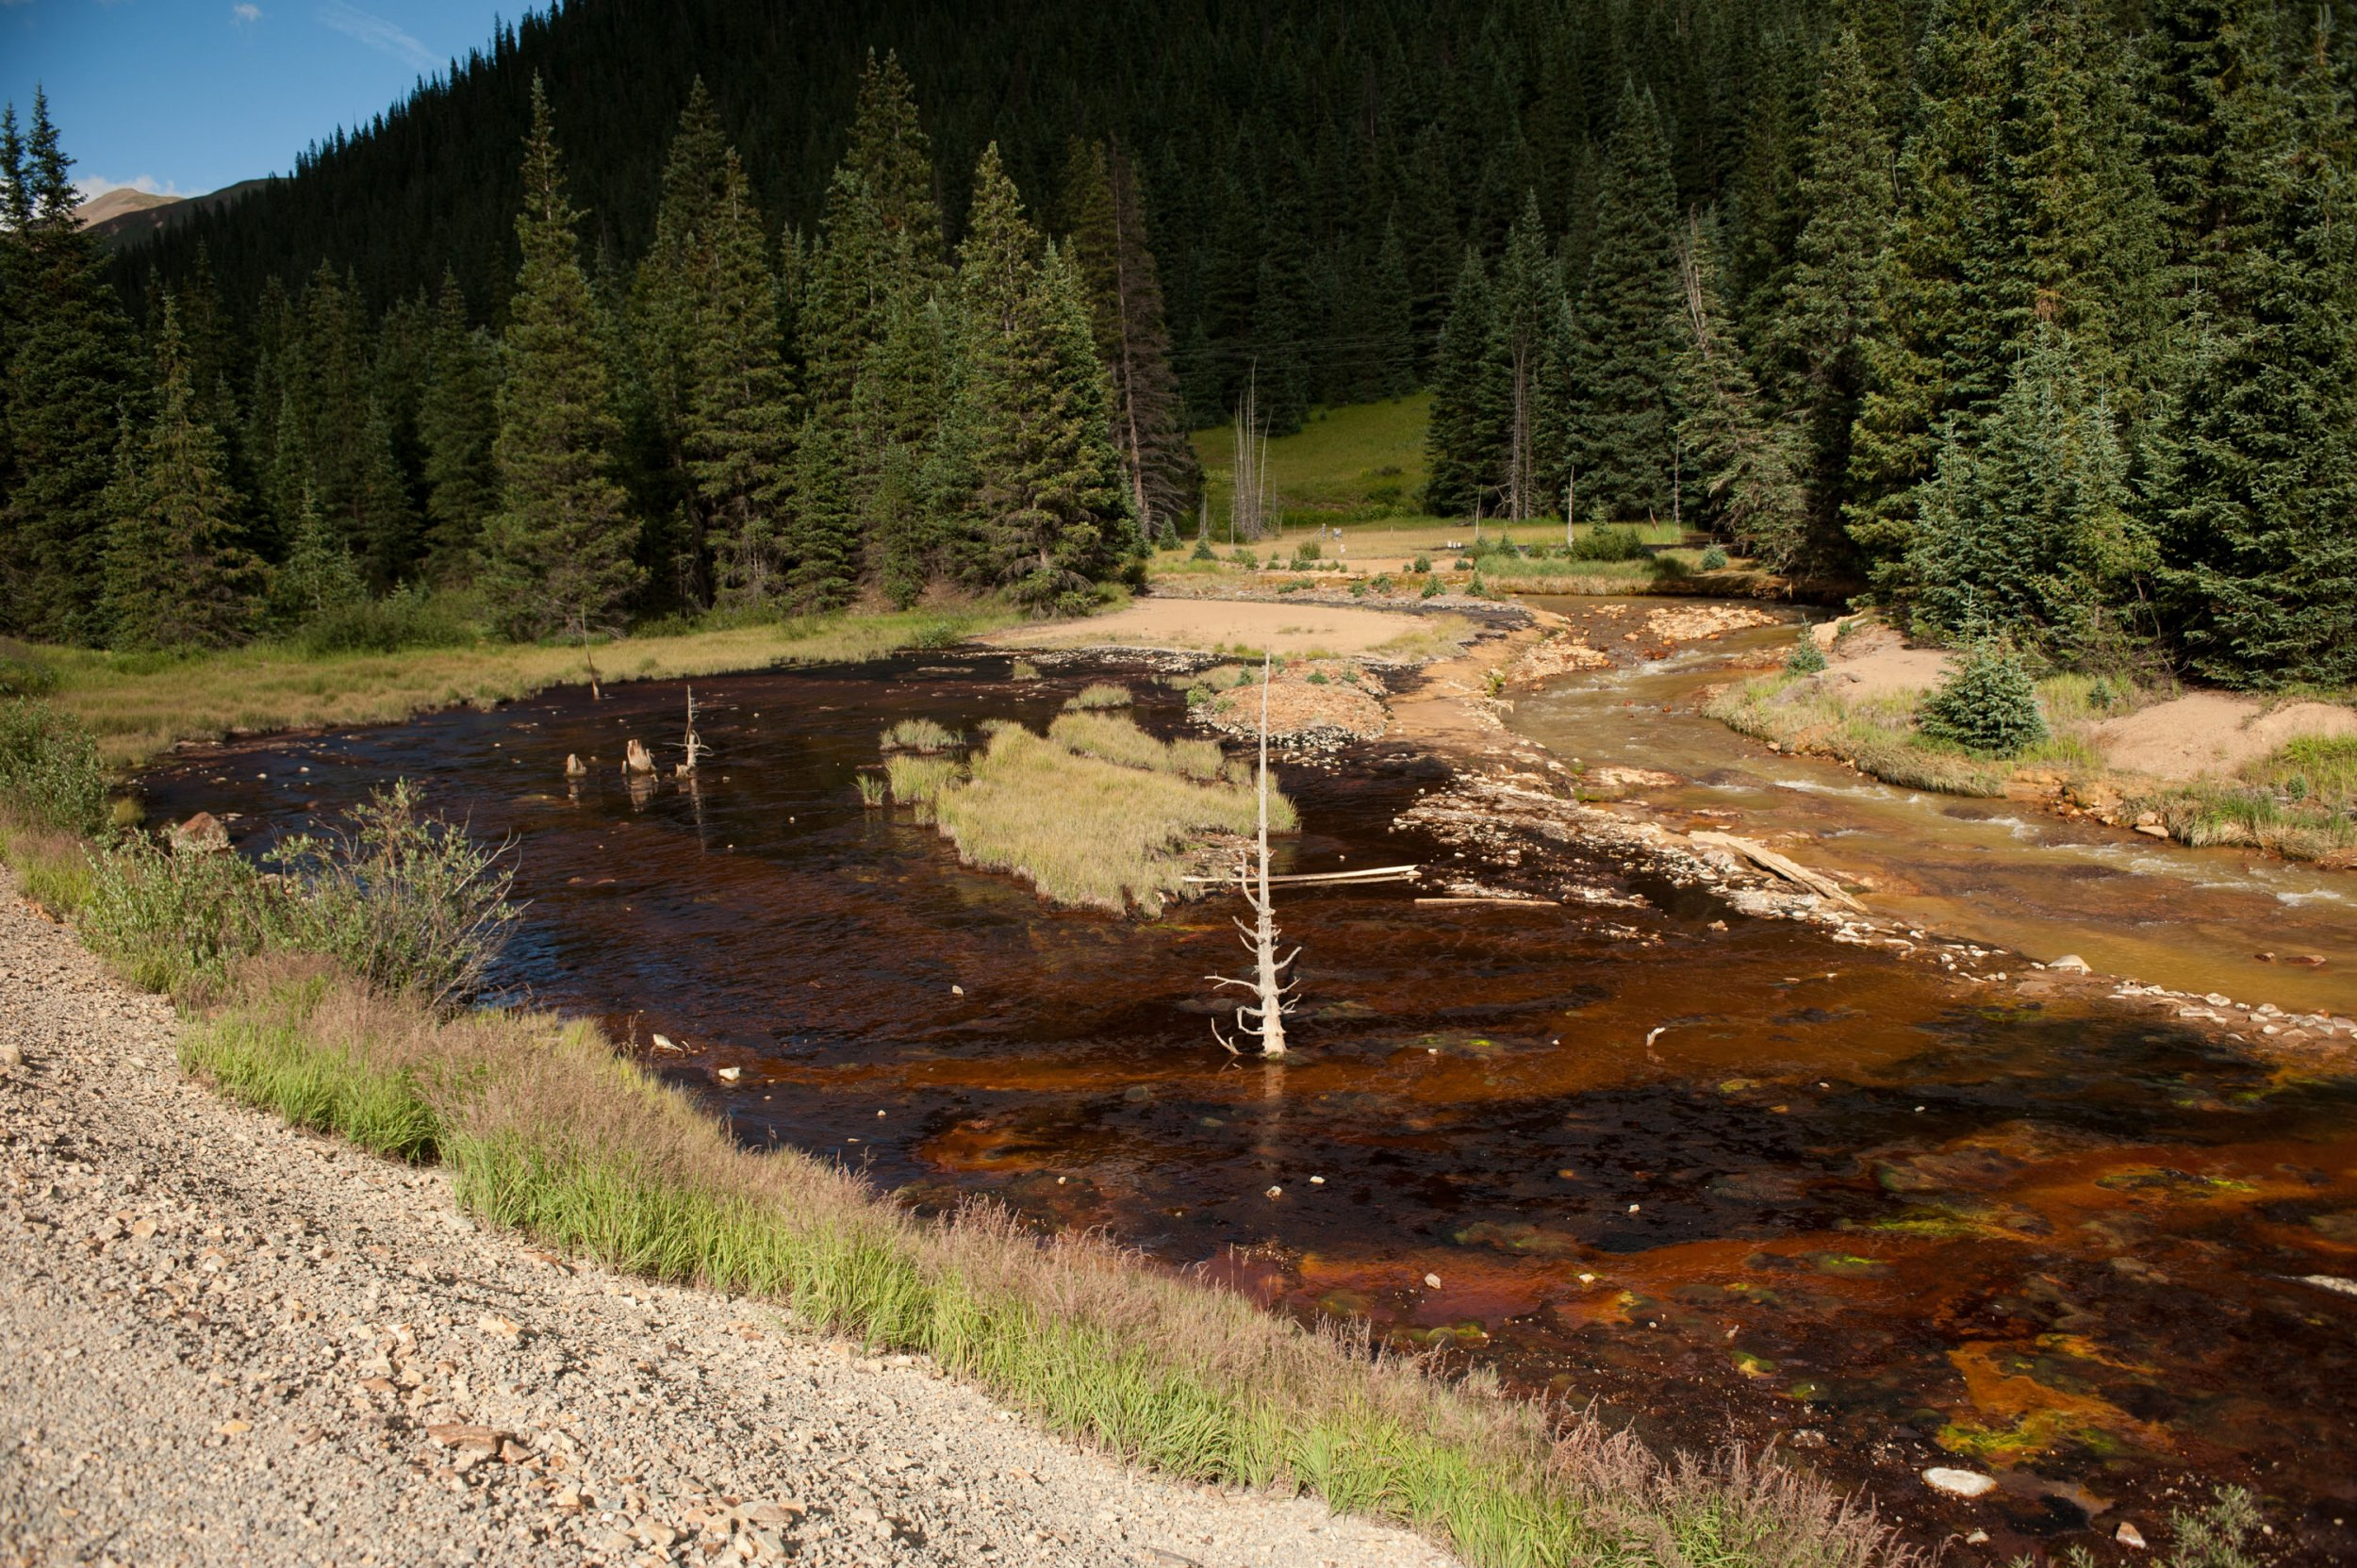 EPA Won't Reconsider Toxic Wastewater Damage Claims After Being Sued